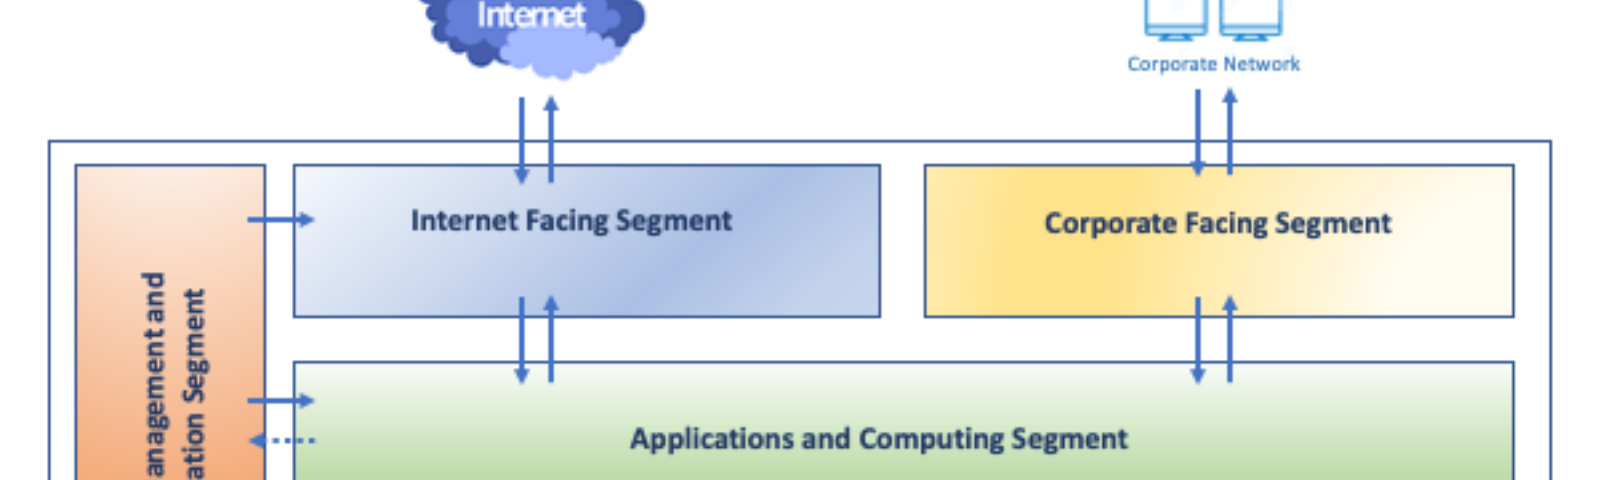 This is a basic reference network model for your cloud infrastructure.